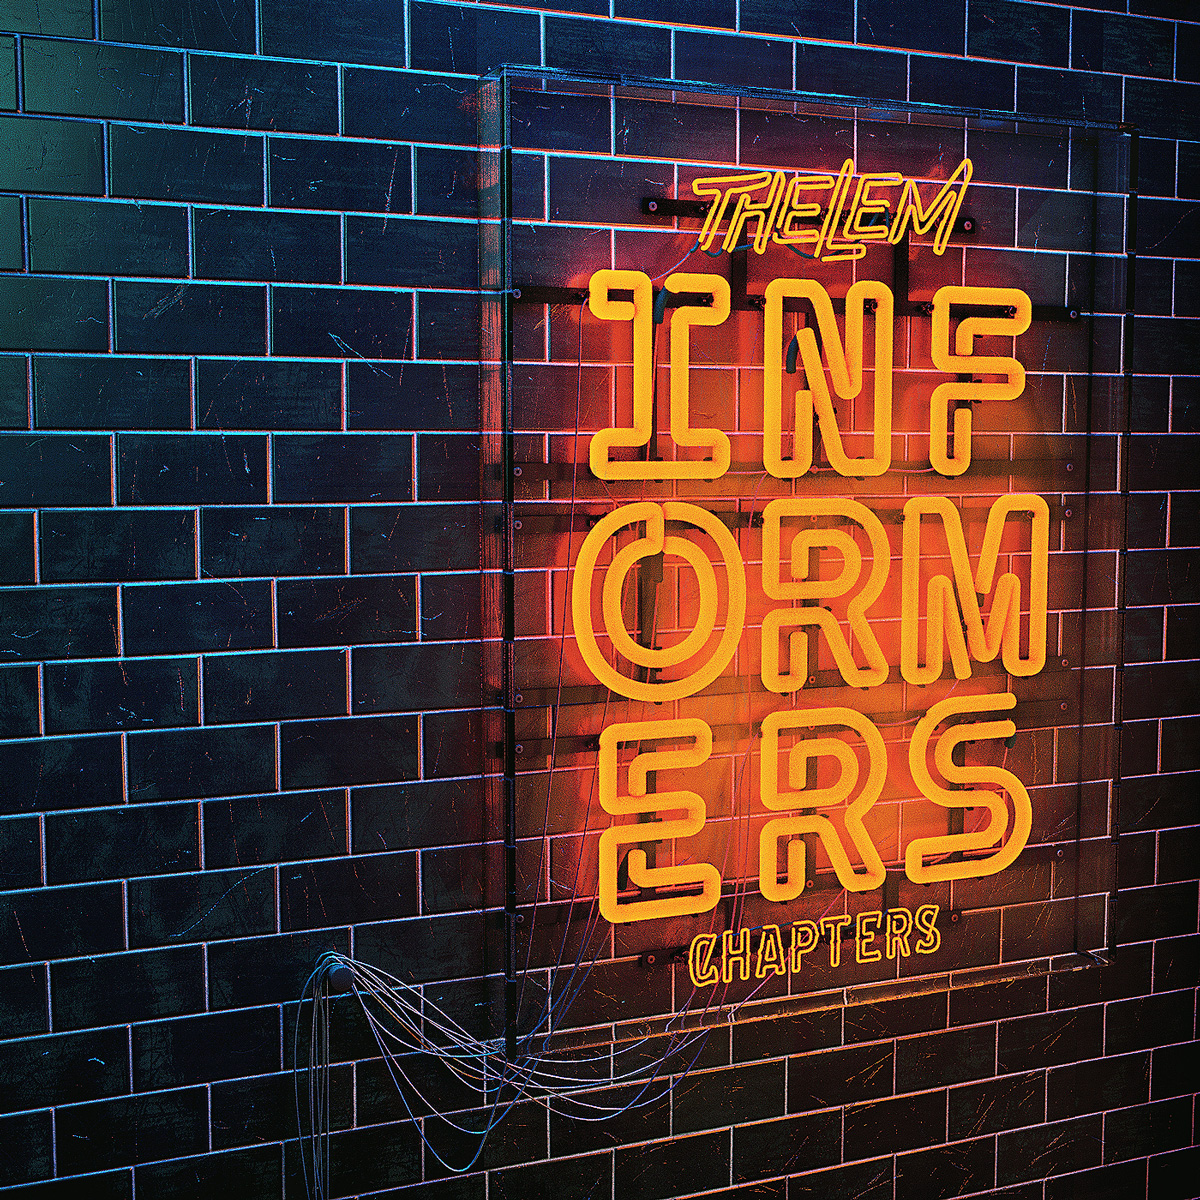 Thelem - Informers